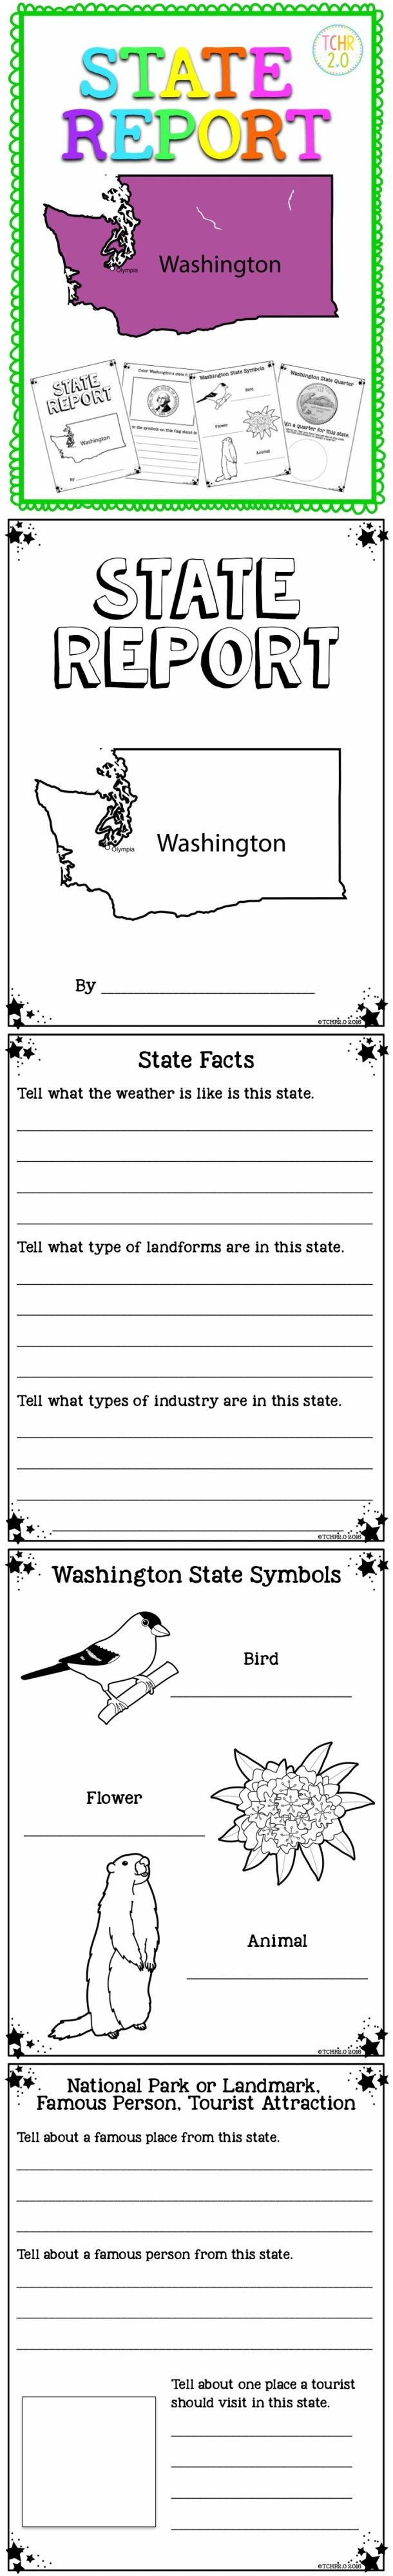 This is a 31 page unit that you can use to complete a research unit on the state of Washington. There are many activities to choose from and you will be able to use them to differentiate depending on your students needs. You can make a state booklet that your students can use to record their research.